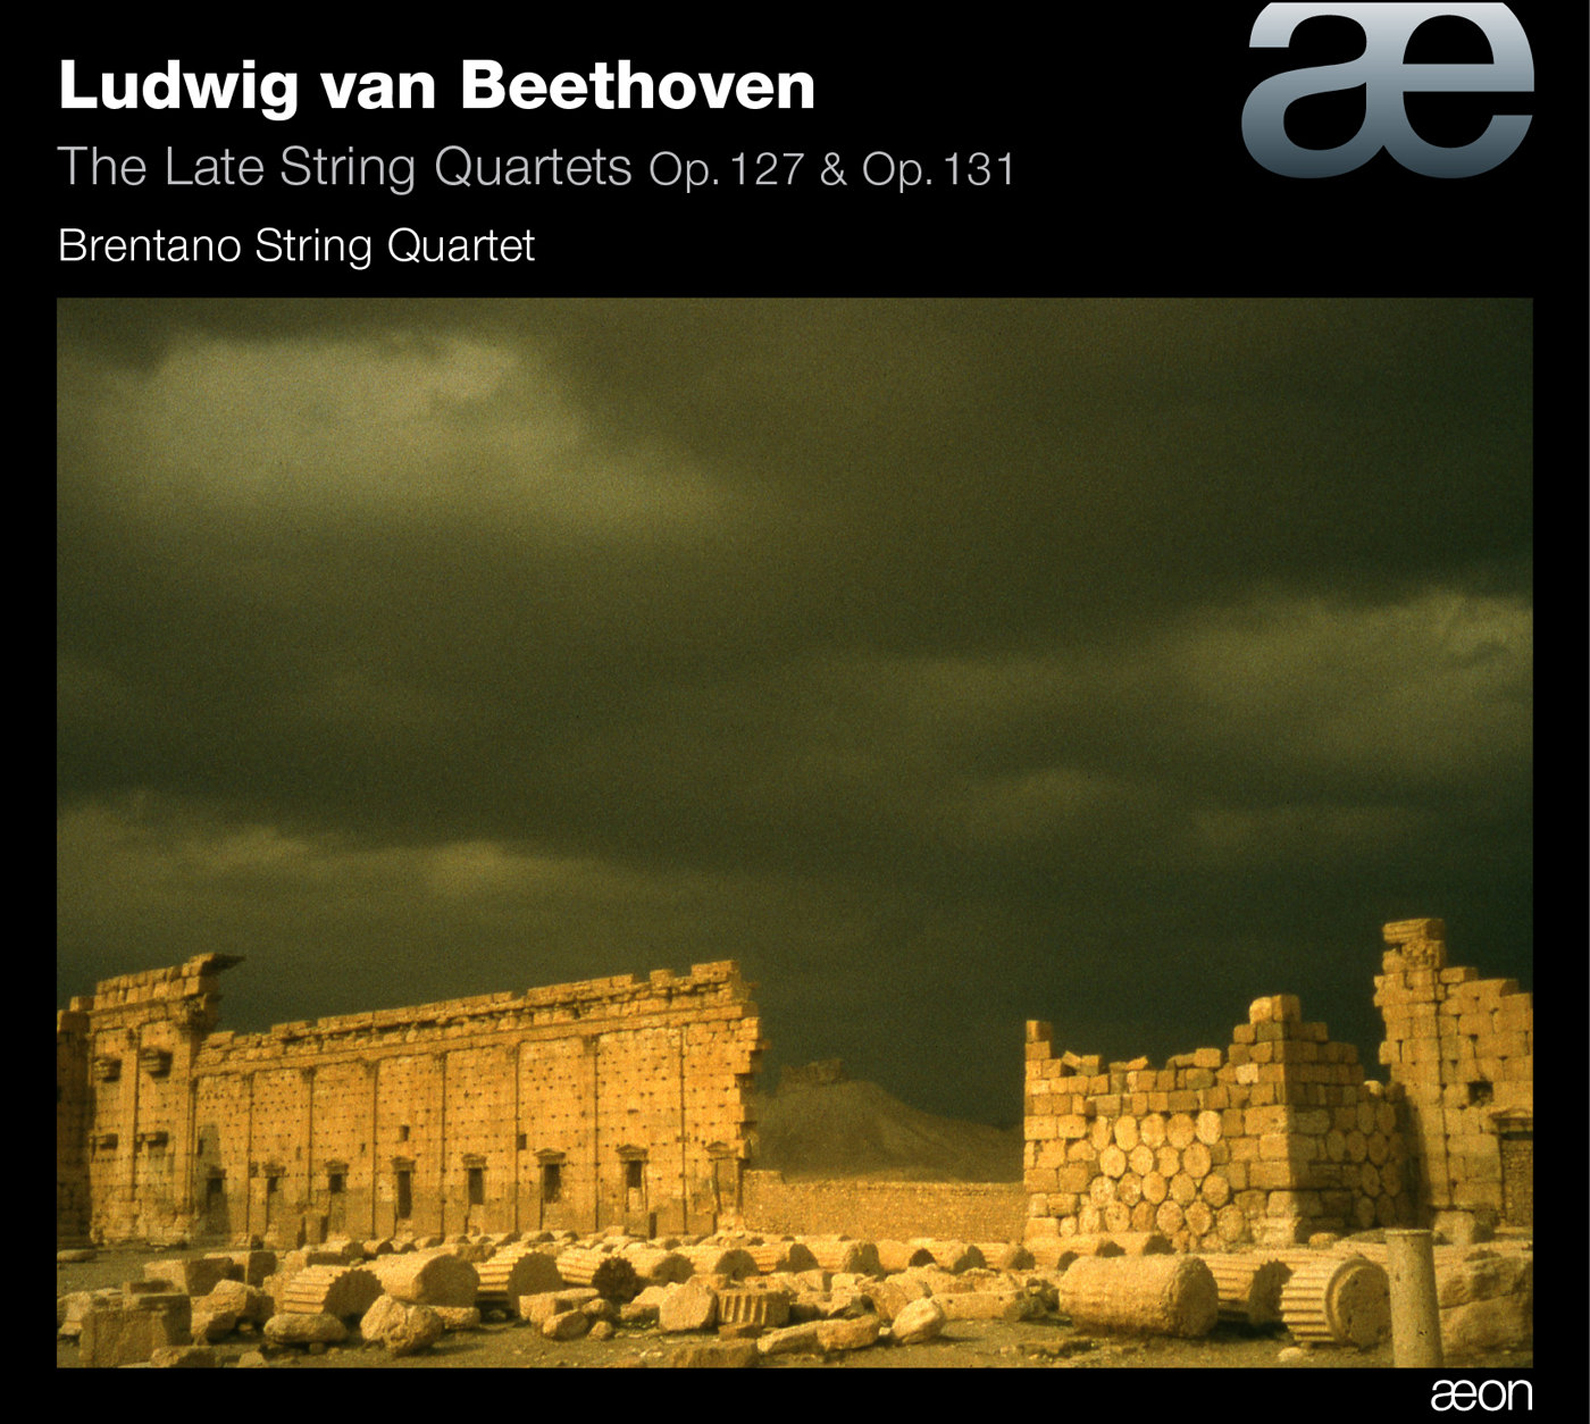 String Quartet No. 12 in E-Flat Major, Op. 127, String Quartet No. 12 in E-Flat Major, Op. 127: IV. Finale